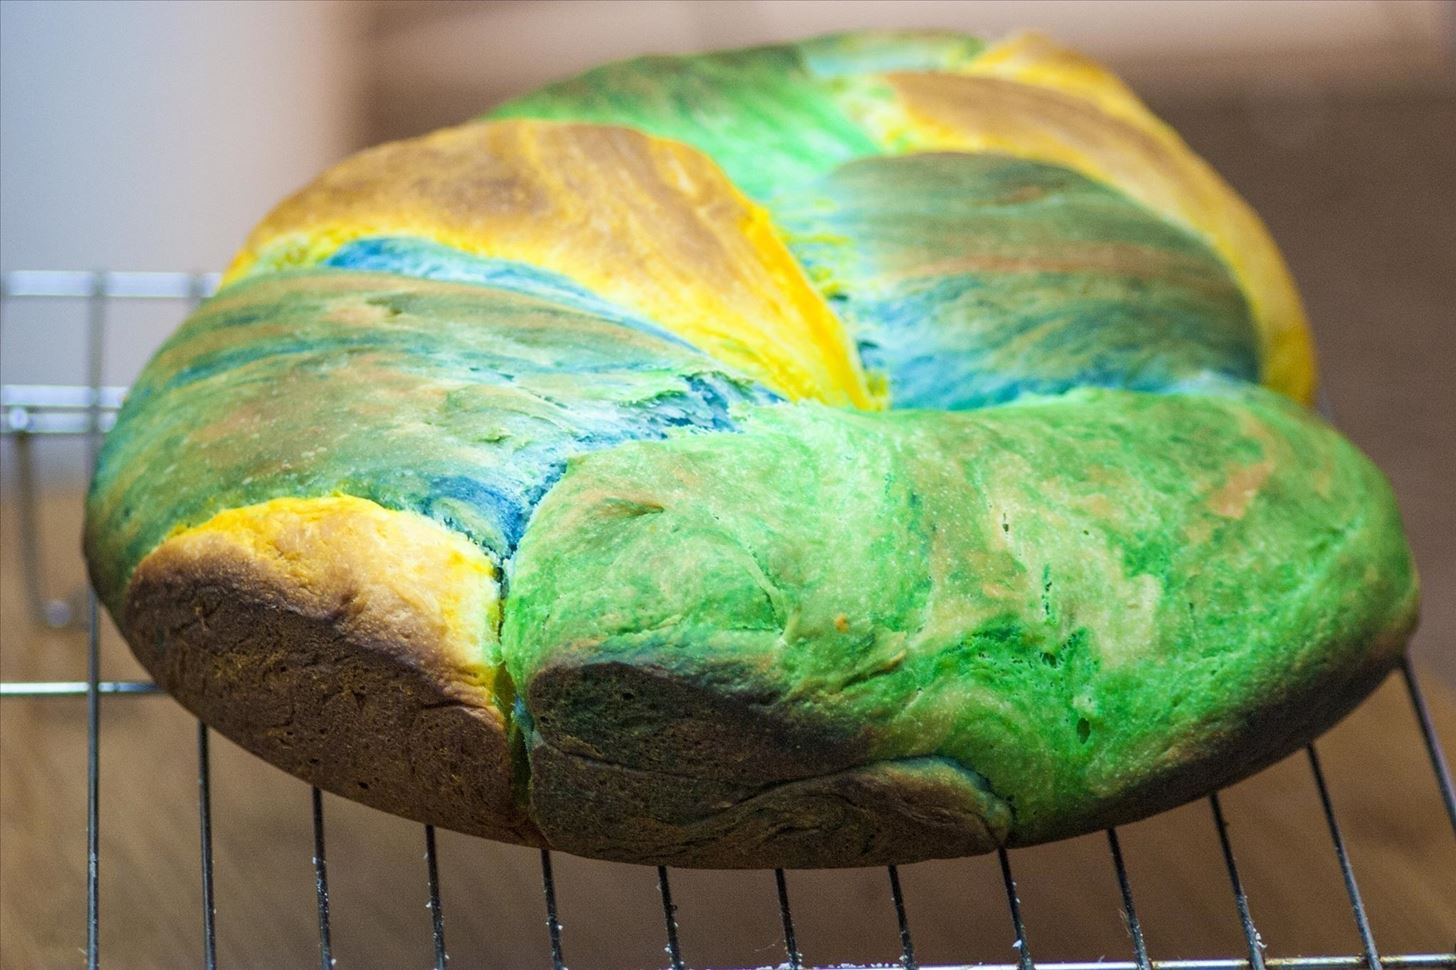 How to Make Super Colorful Bread for One-of-a-Kind Ice Cream Sandwiches